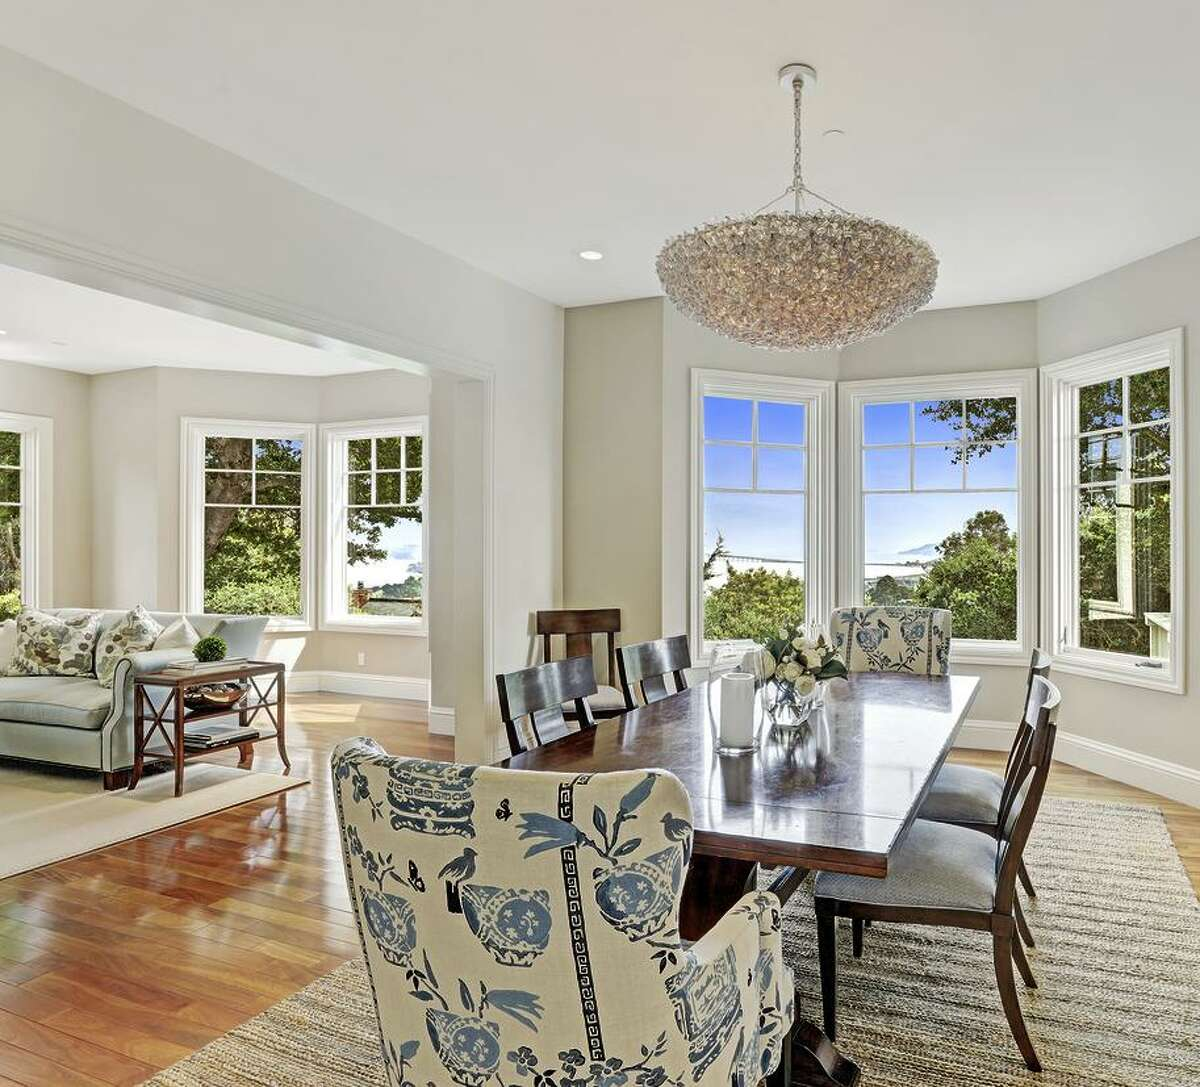 The dining area features contemporary lighting and a bay of windows.